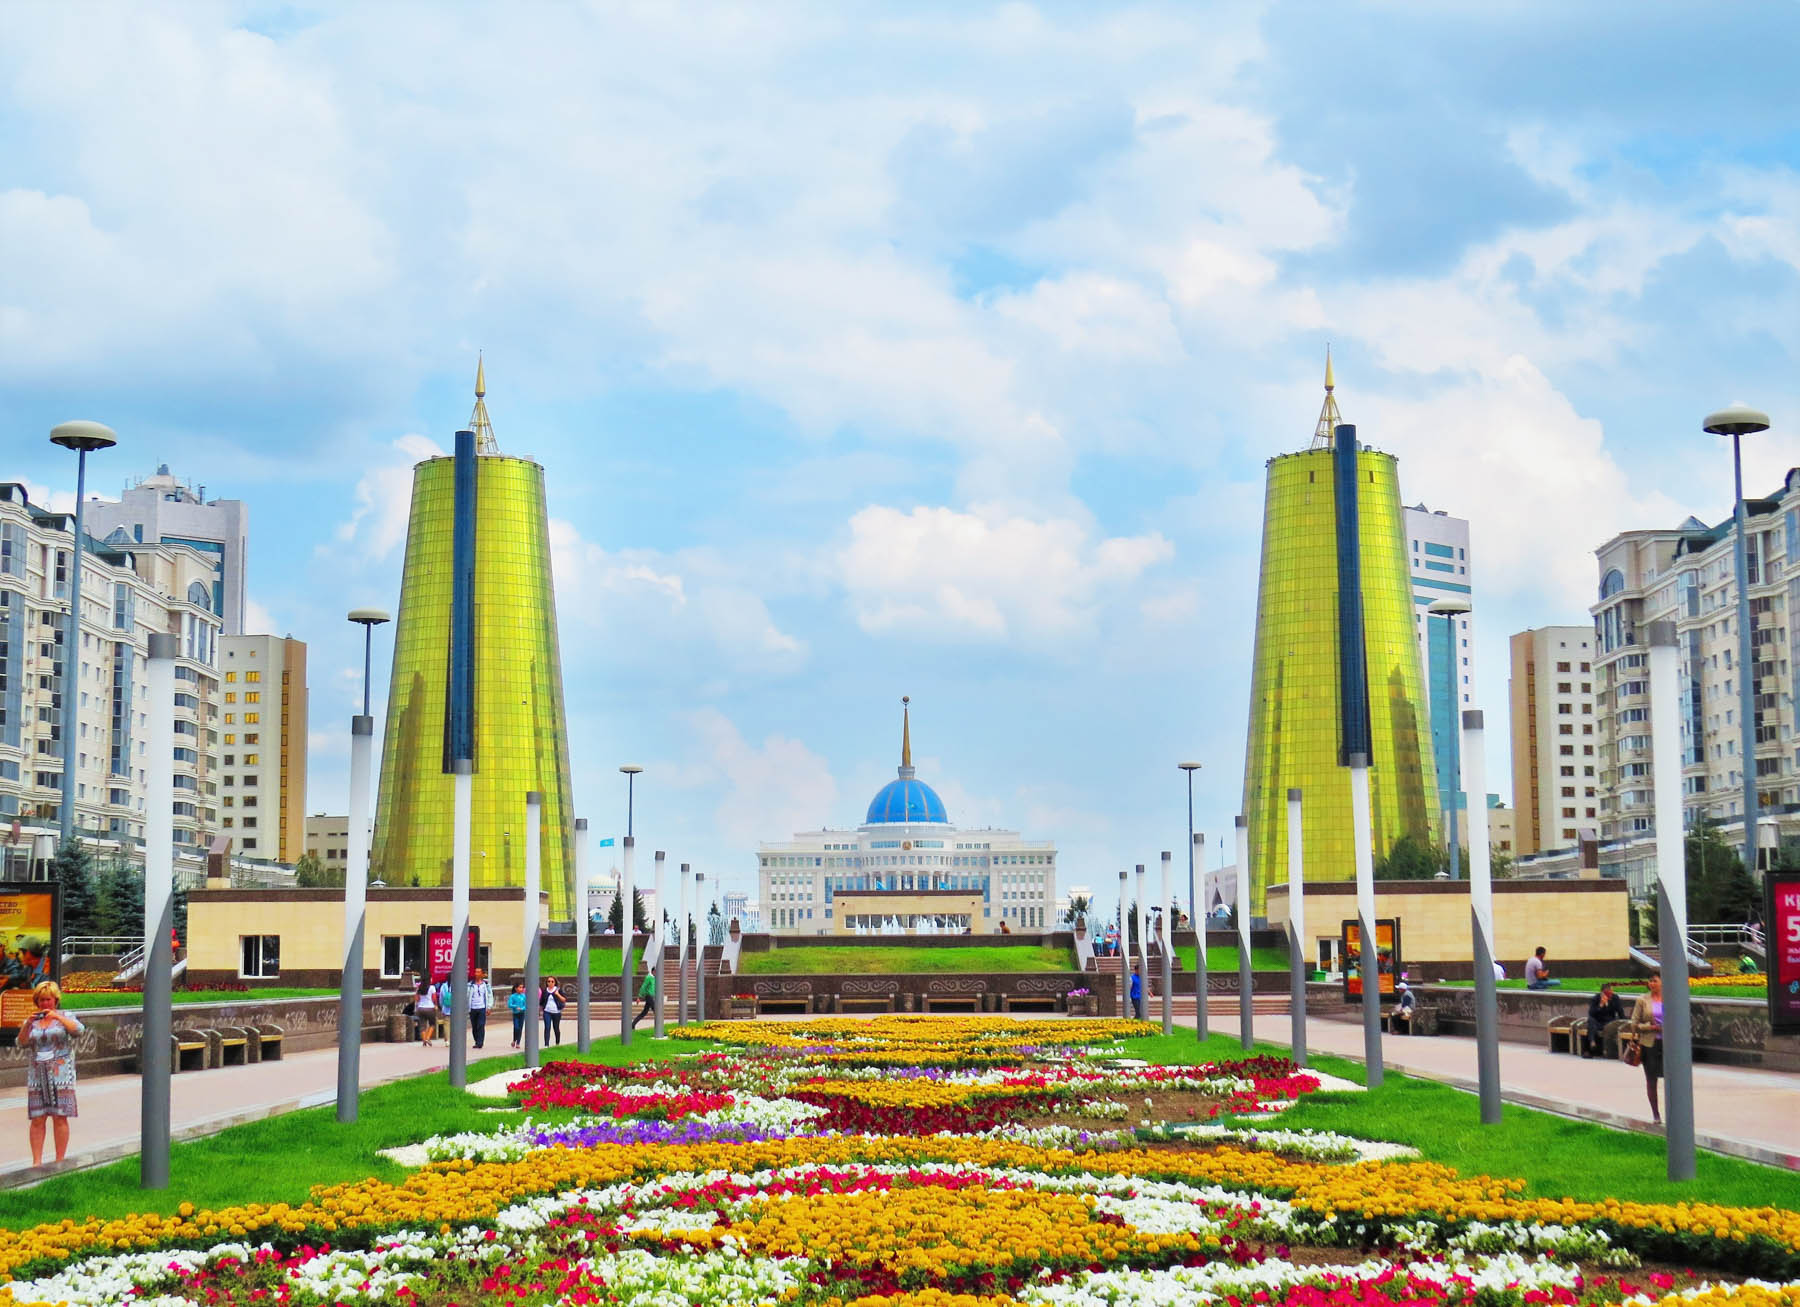 kazakhstan - photo #9